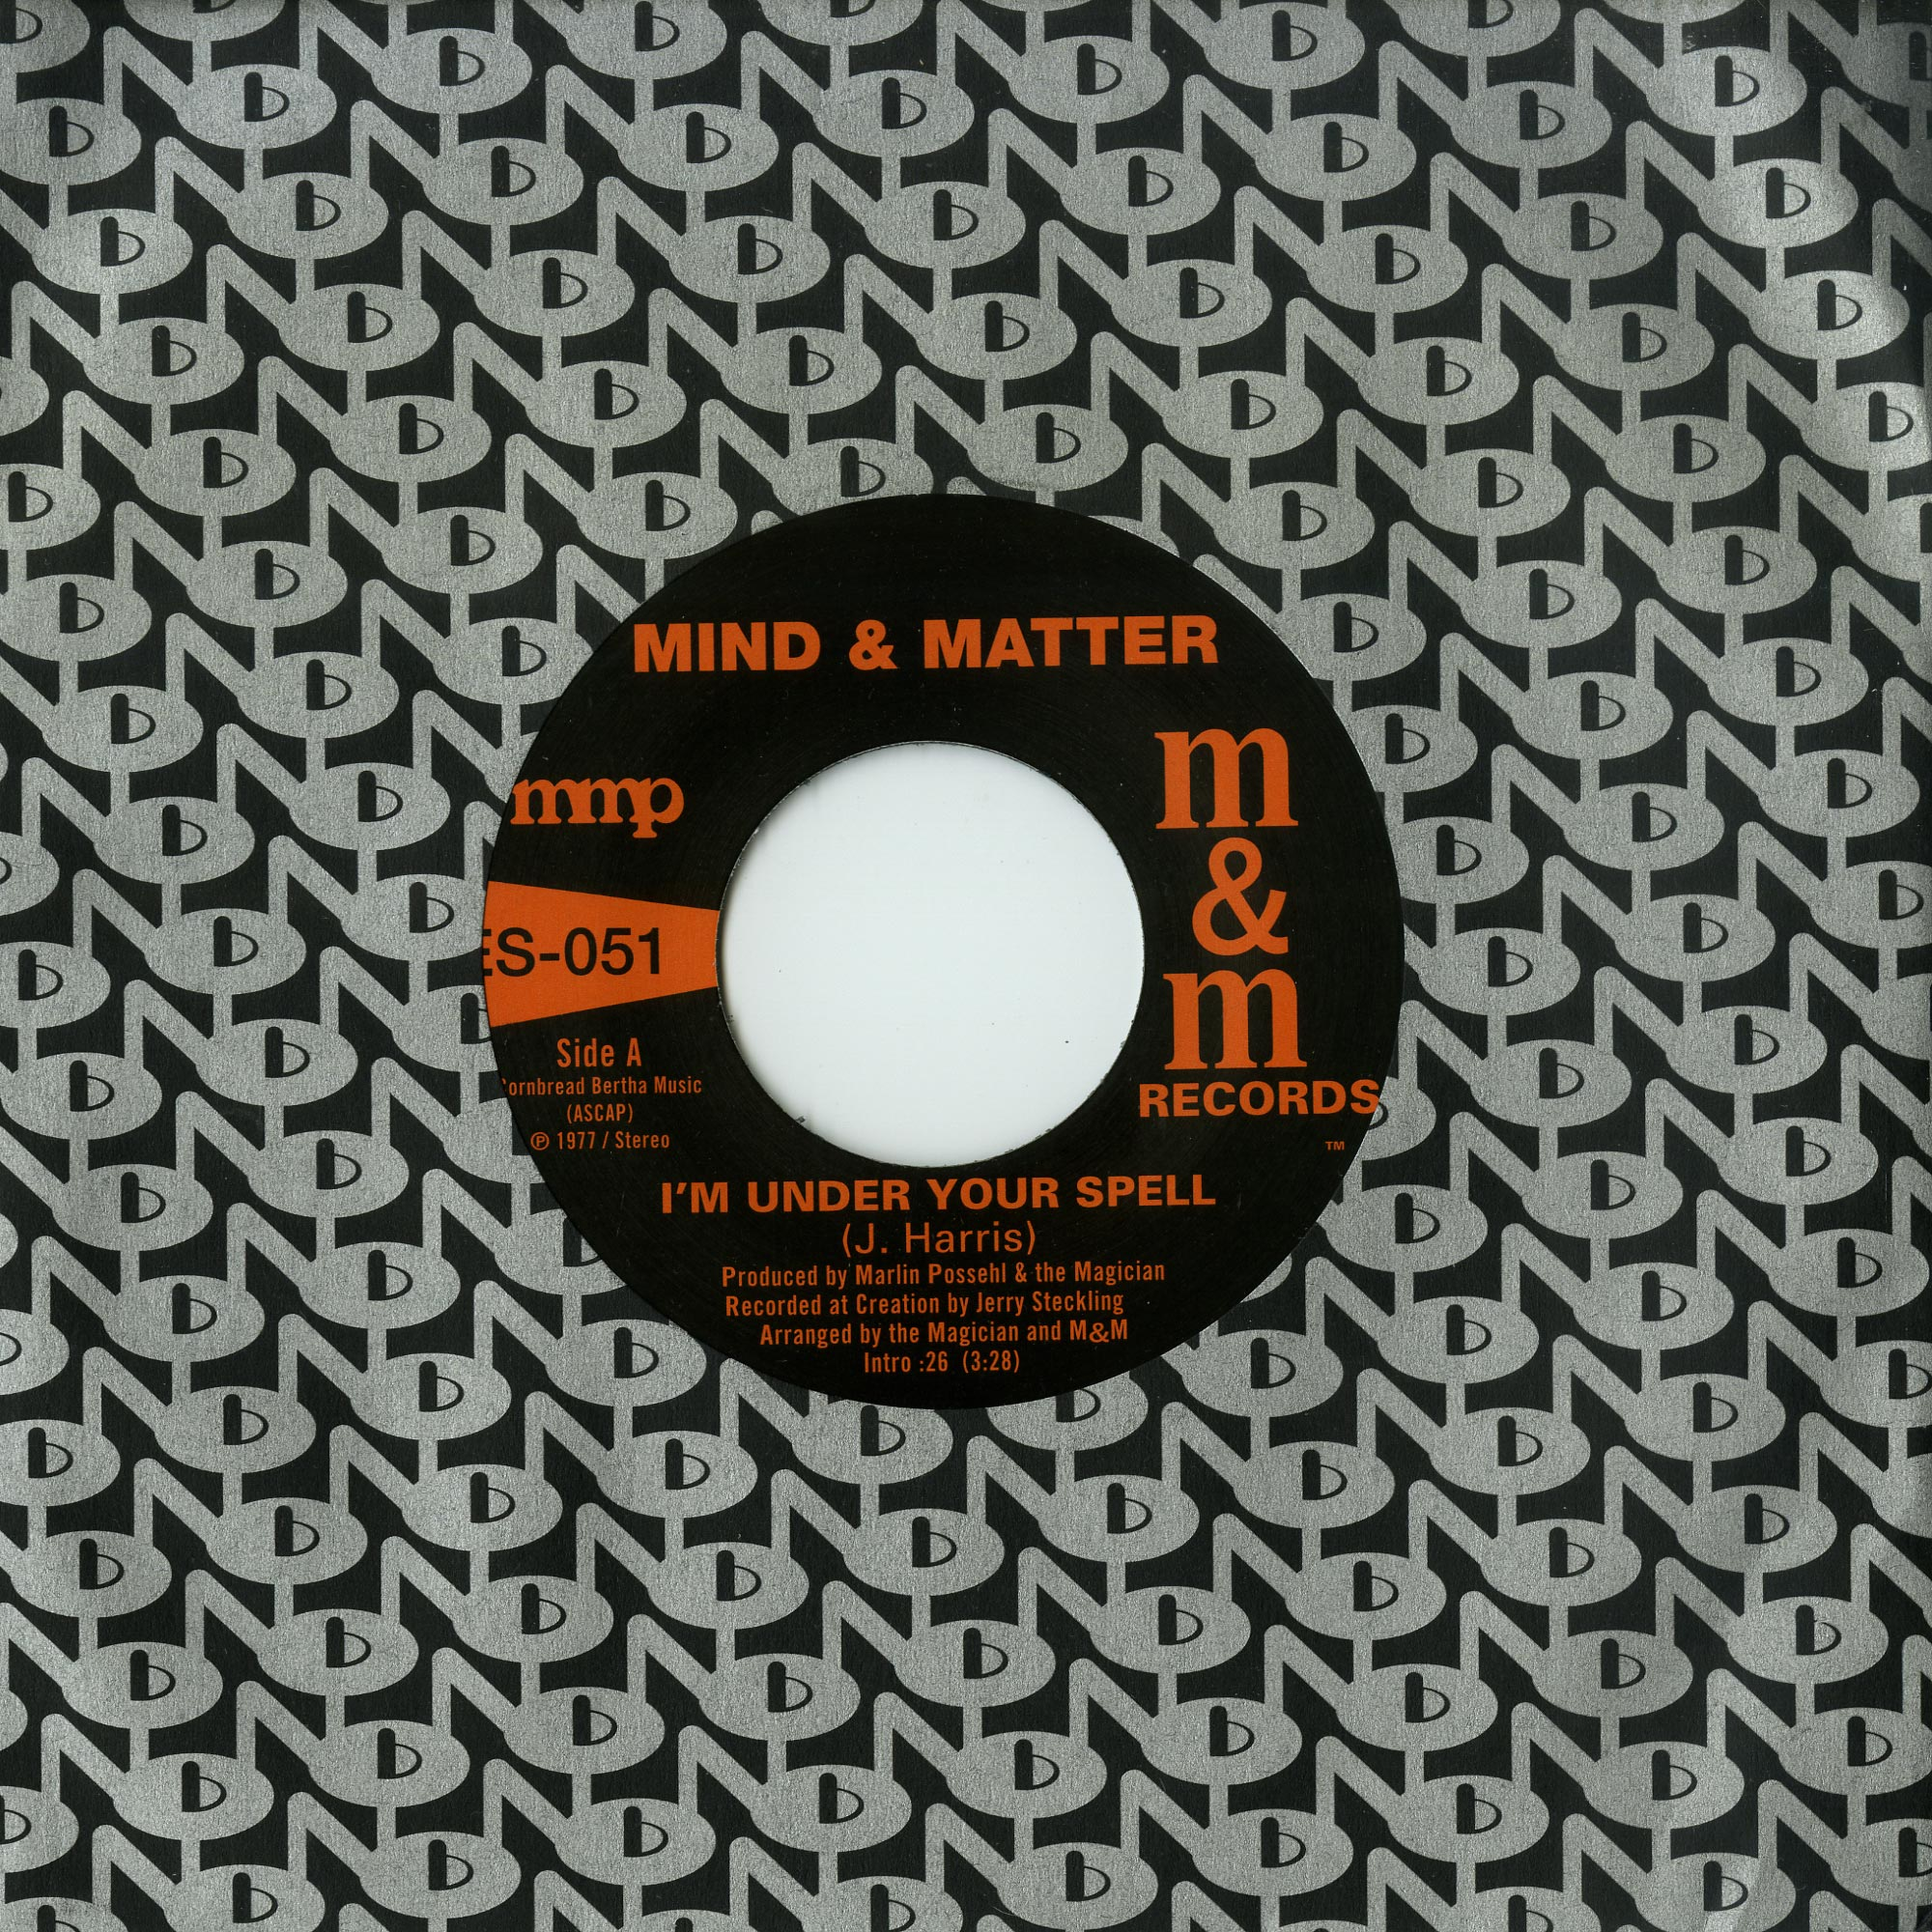 Mind & Matter - I M UNDER YOUR SPELL / SUNSHINE LADY